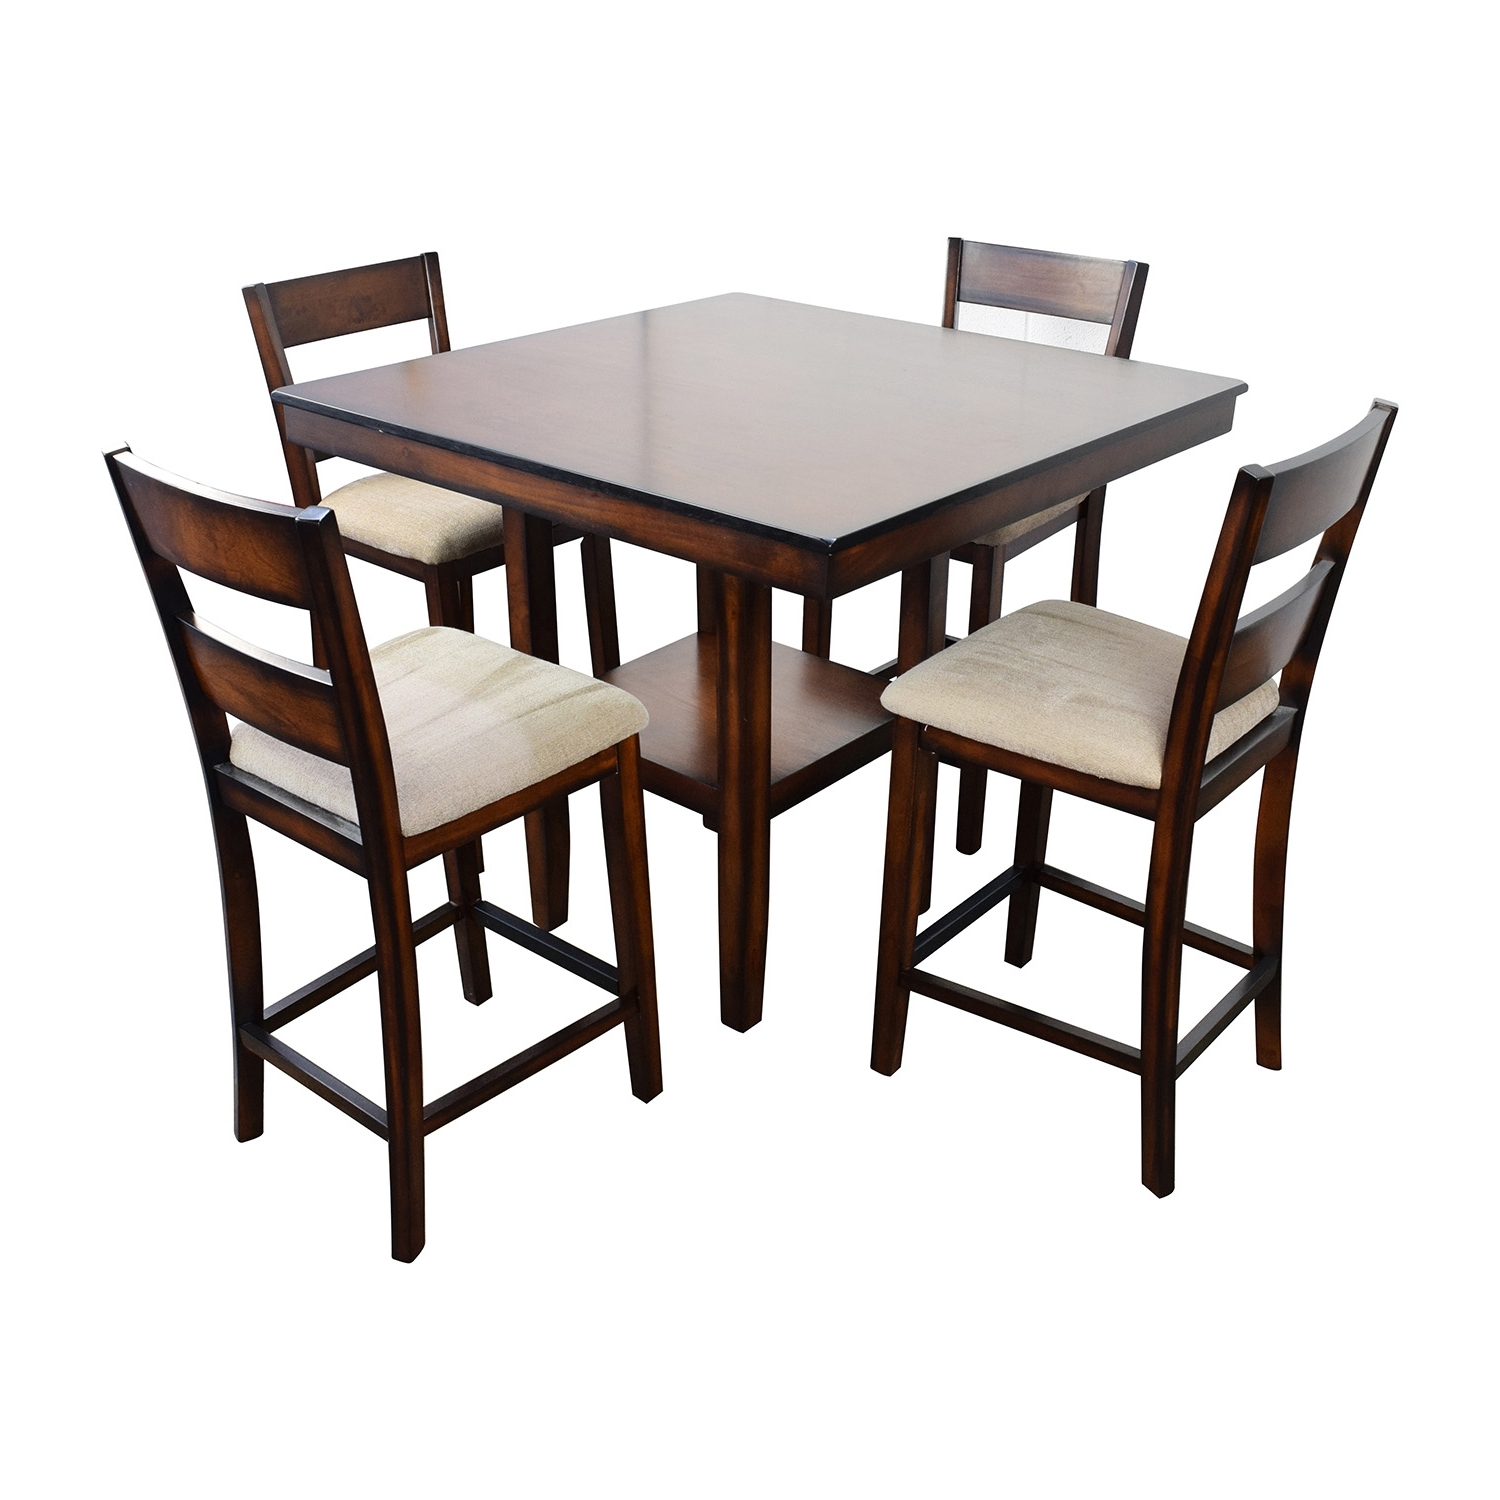 [%66% Off – Macy's Macy's Branton 5 Pc. Counter Height Dining Set / Tables Pertaining To Preferred Macie 5 Piece Round Dining Sets|Macie 5 Piece Round Dining Sets Throughout Latest 66% Off – Macy's Macy's Branton 5 Pc. Counter Height Dining Set / Tables|Trendy Macie 5 Piece Round Dining Sets Regarding 66% Off – Macy's Macy's Branton 5 Pc. Counter Height Dining Set / Tables|Most Current 66% Off – Macy's Macy's Branton 5 Pc (View 9 of 25)